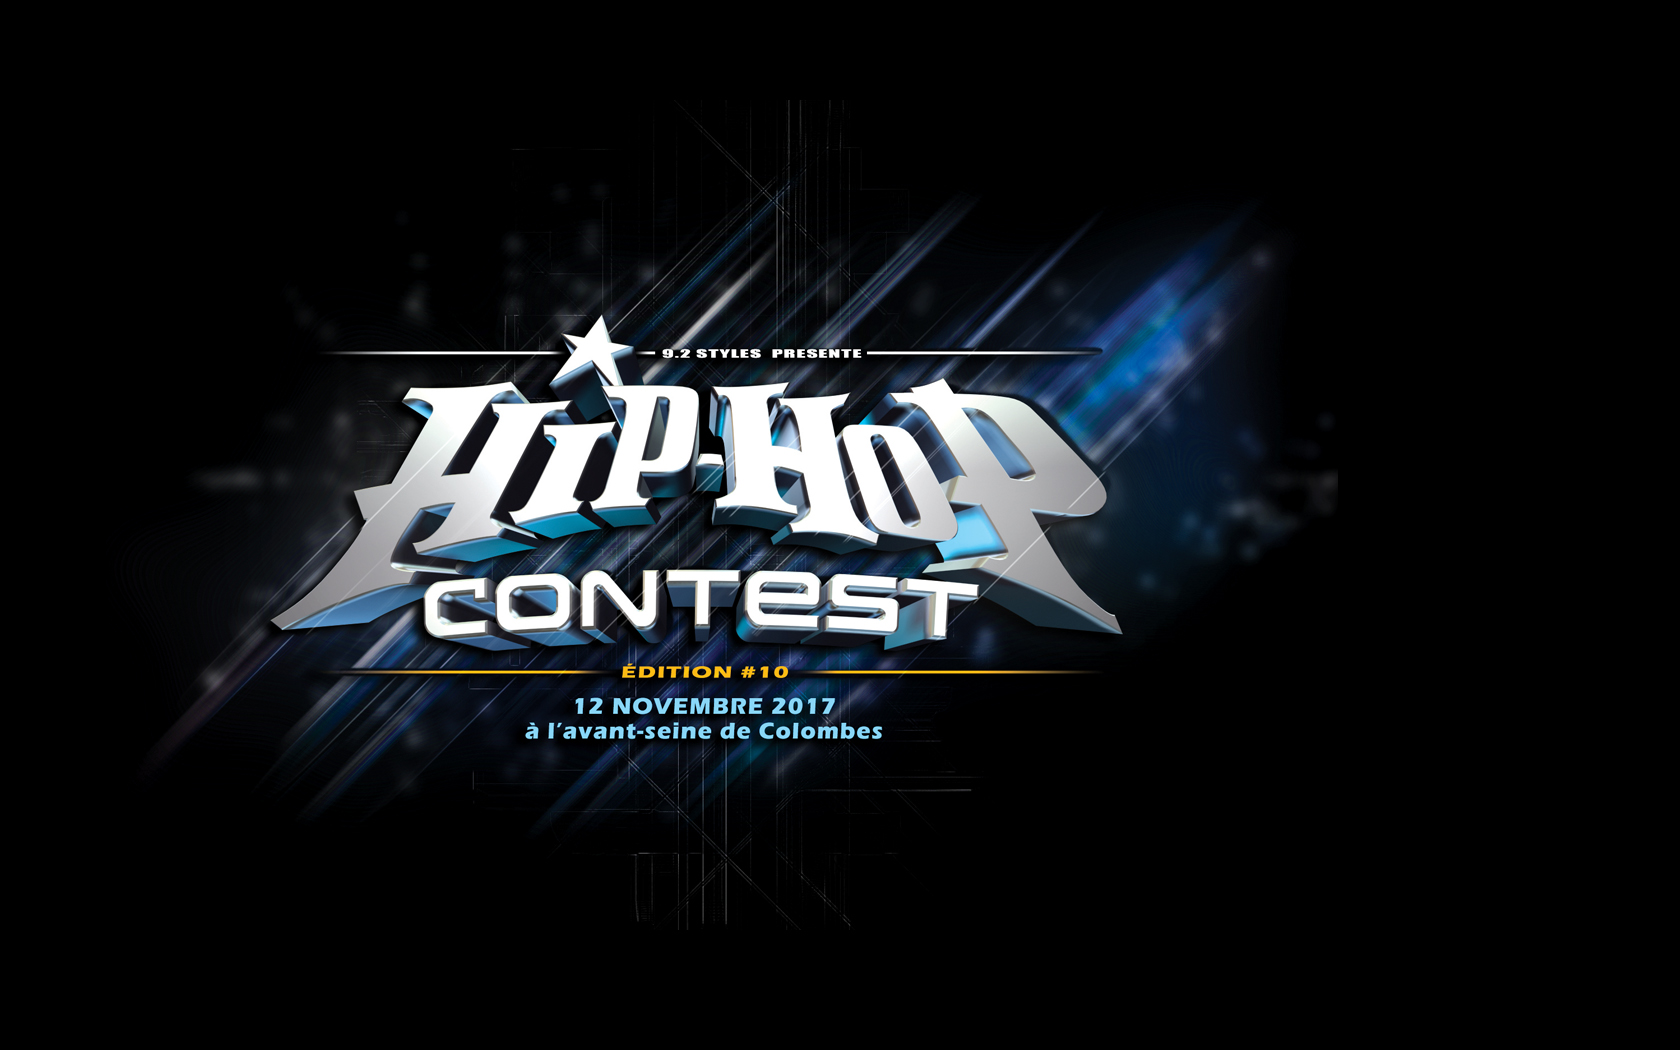 HIP HOP CONTEST 2017